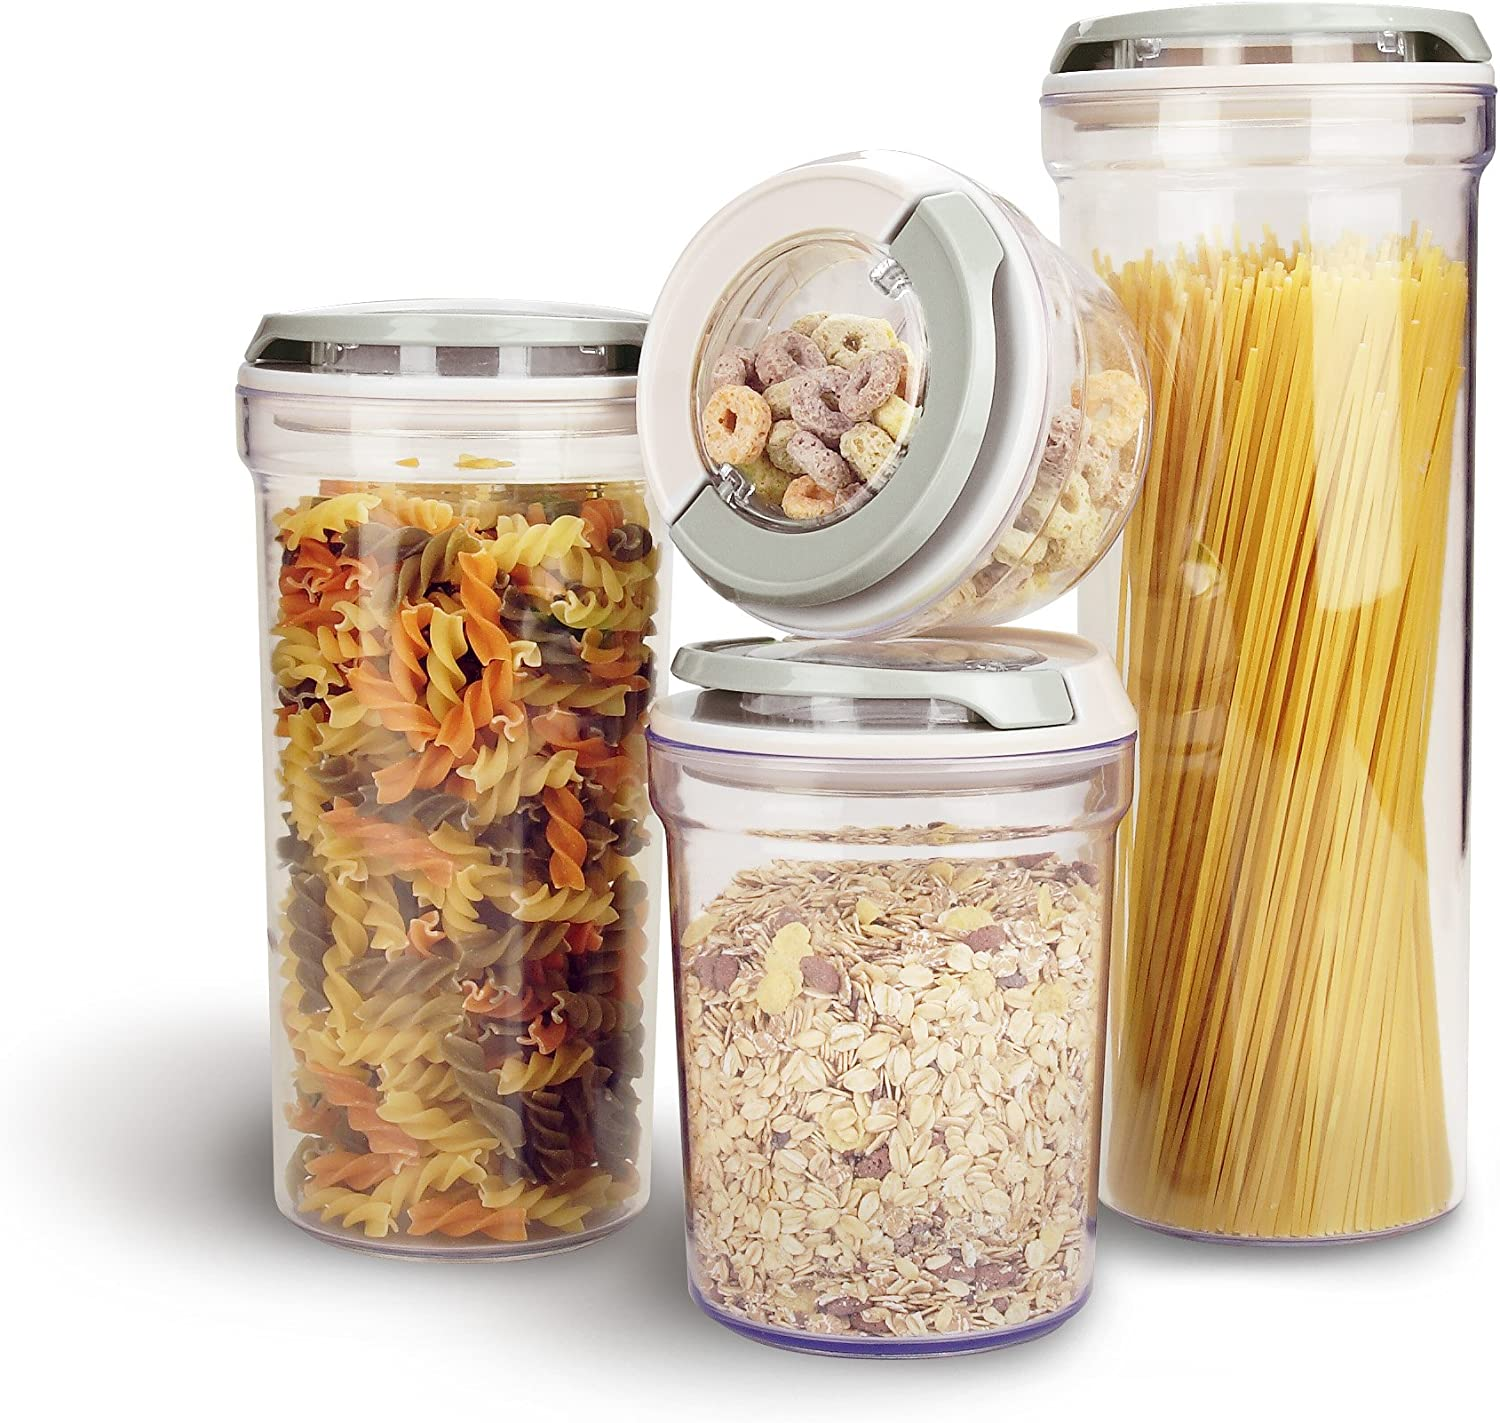 Food Containers Airtight Durable Food Storage Quality Clear Plastic Boxes Set